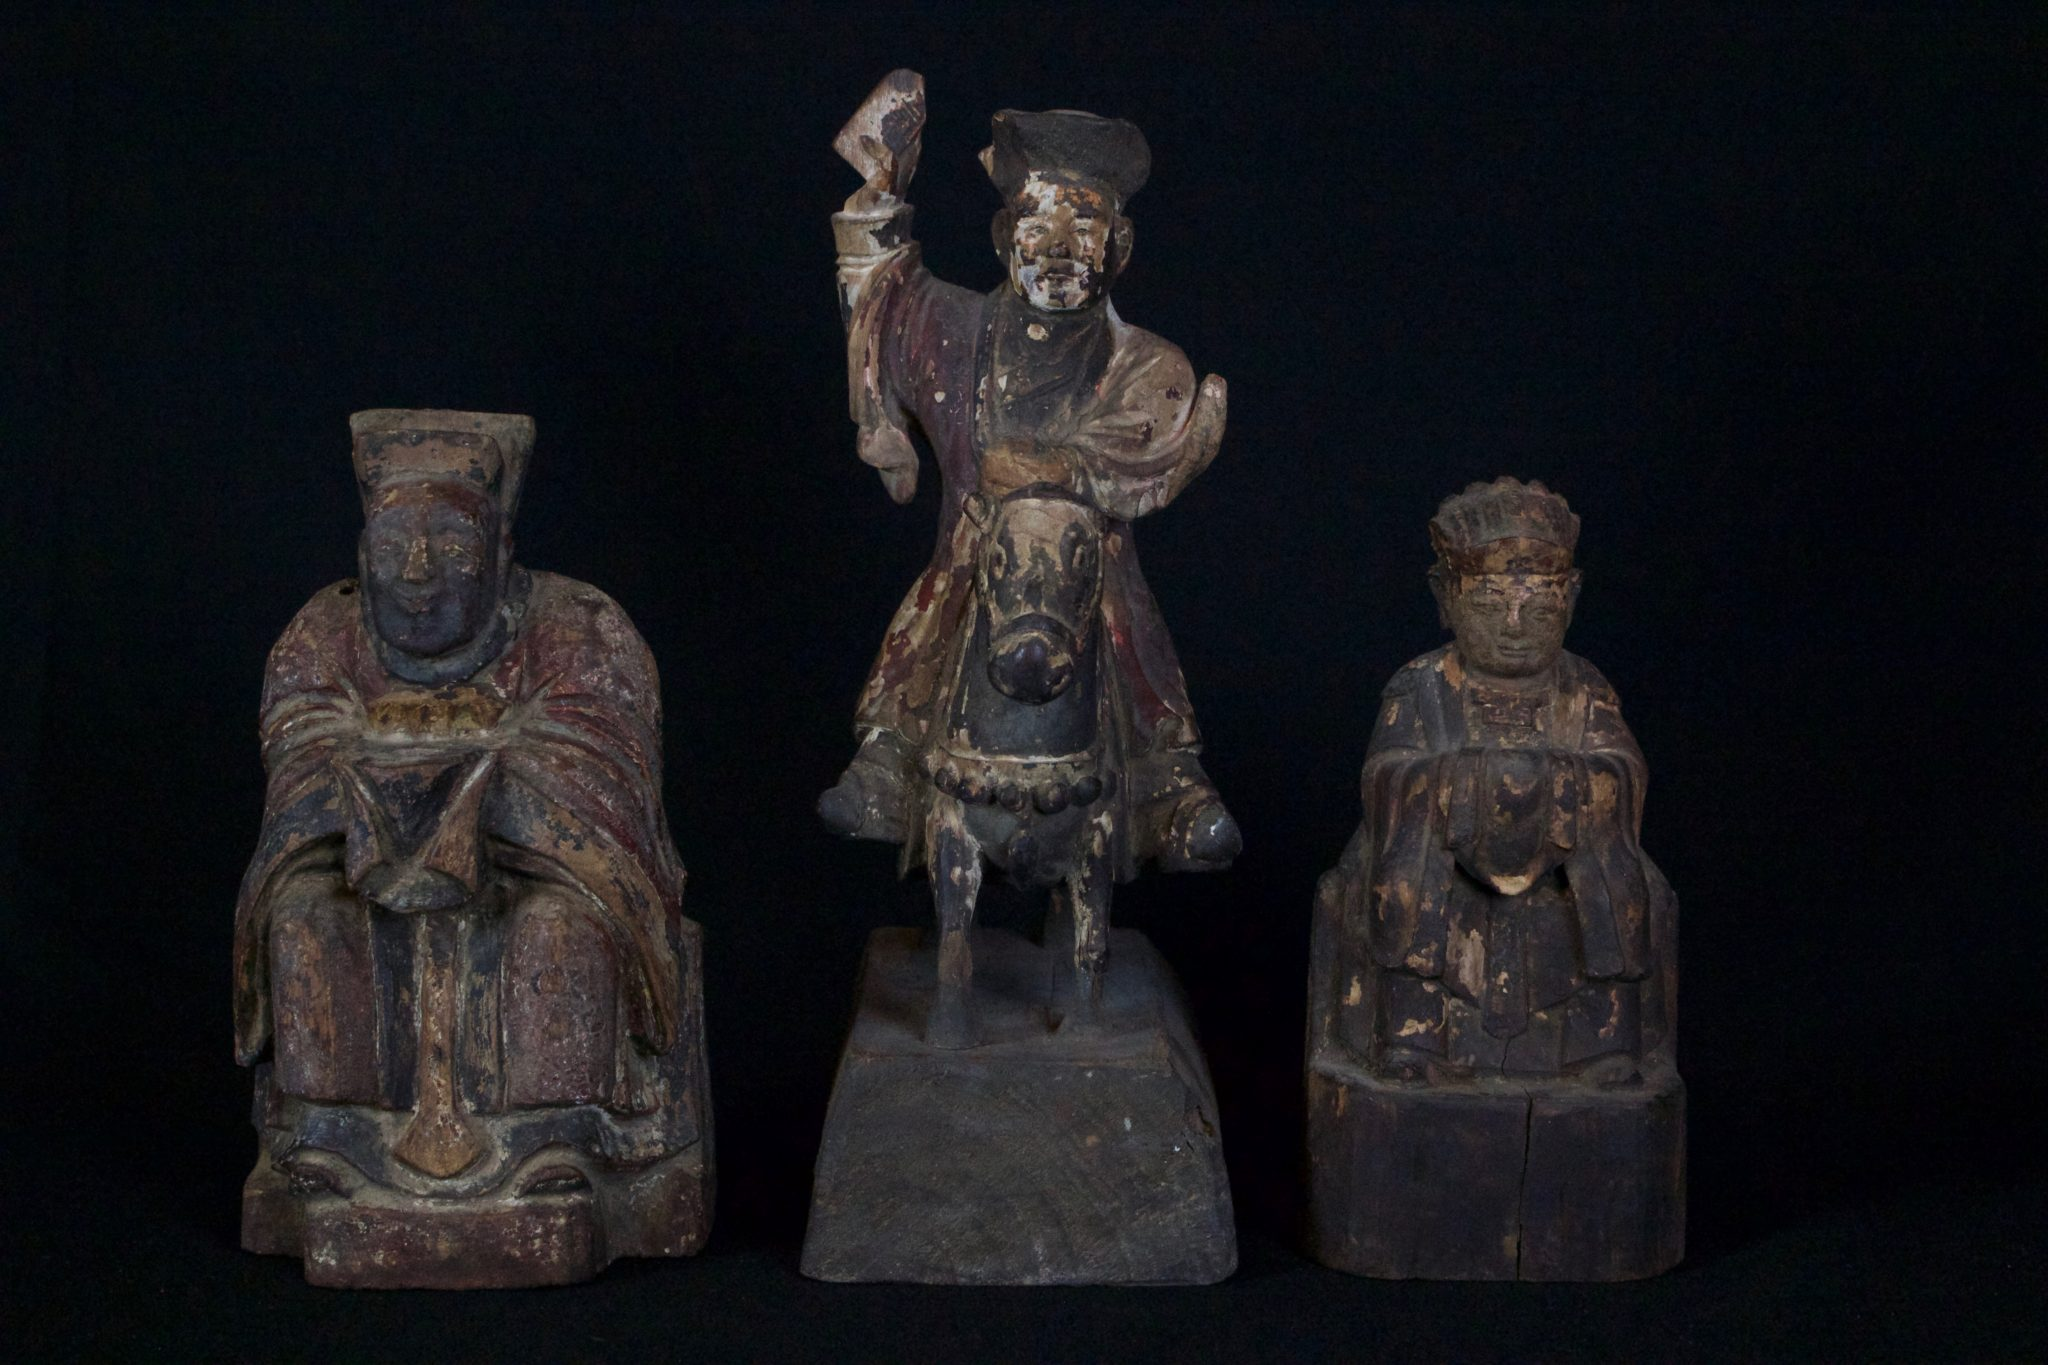 "Zhu Zhong Fan, Shaman Priest Altar Figures, Vietnam, Yao people, Mid to late 19th c, Wood, pigment, Kept in Shaman's home. Part of necessary items to contact spirit world. Every shaman has a set of three called, Zhu Zhong Fan figures. The 3 are: To Sai - ancestor shaman priest figure; Nyut Hung - seated Mandarin or God figure; and Khong Zhao - a protecting officer or messenger to the gods. He is always mounted and brandishing a sword or pennant. They are only sacred when once they are gifted with a soul. A ceremony is performed calling for the deity or ancestor to enter the figure. A piece of silver and some threads are placed in a secret hole in the back and sealed up. This is where the soul resides. When the figure is given away or sold the silver is removed rendering the figure inert and no longer sacred. (left - 'Nyut Hung' figure, 8"" x 4 ¼"" x 2 ½"", $650); (middle - 'Khong Zhao' figure, 11"" x 4"" x 6 ¾"", $900.); (right - 'To Sai' figure,7"" x 3 ¼"" x 2 ½"", $650)"